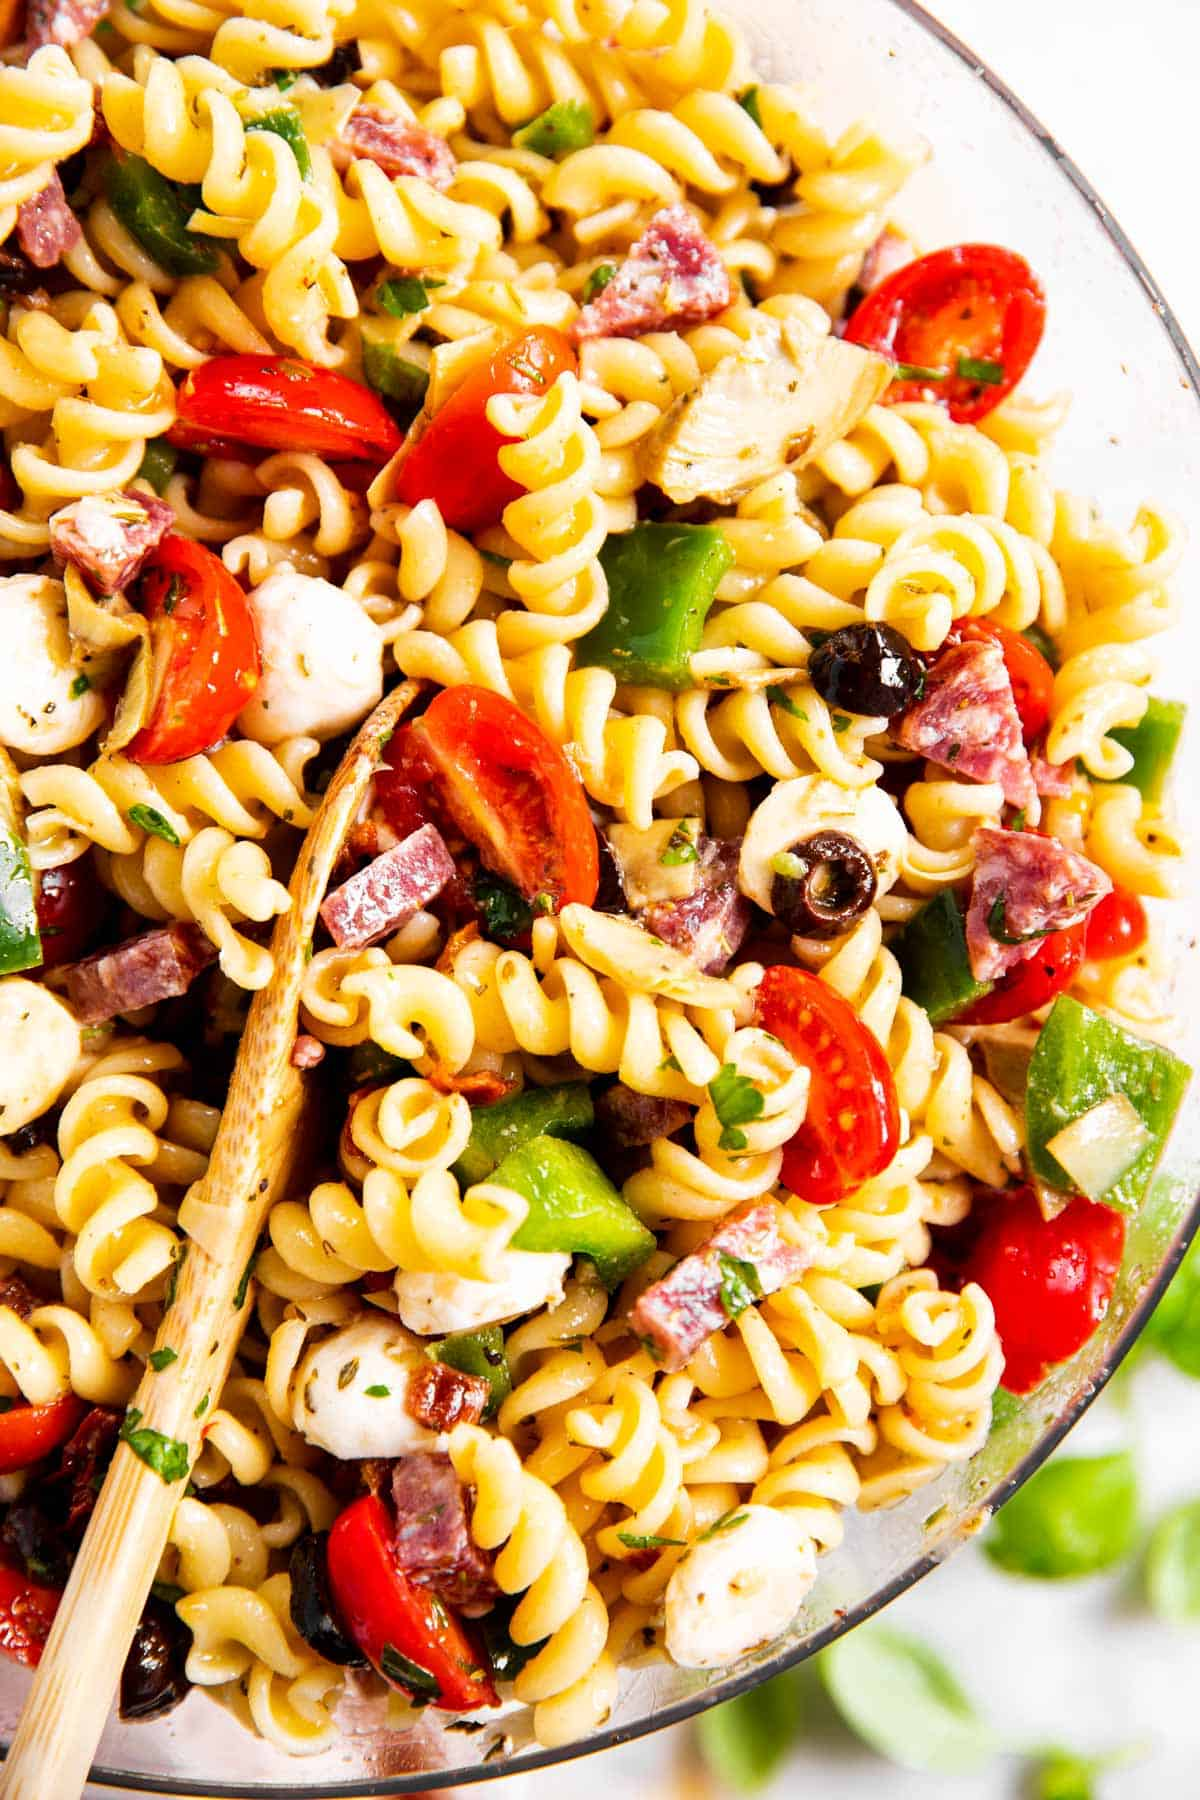 overhead close up photo of Italian pasta salad in glass bowl with wooden spoon inside salad